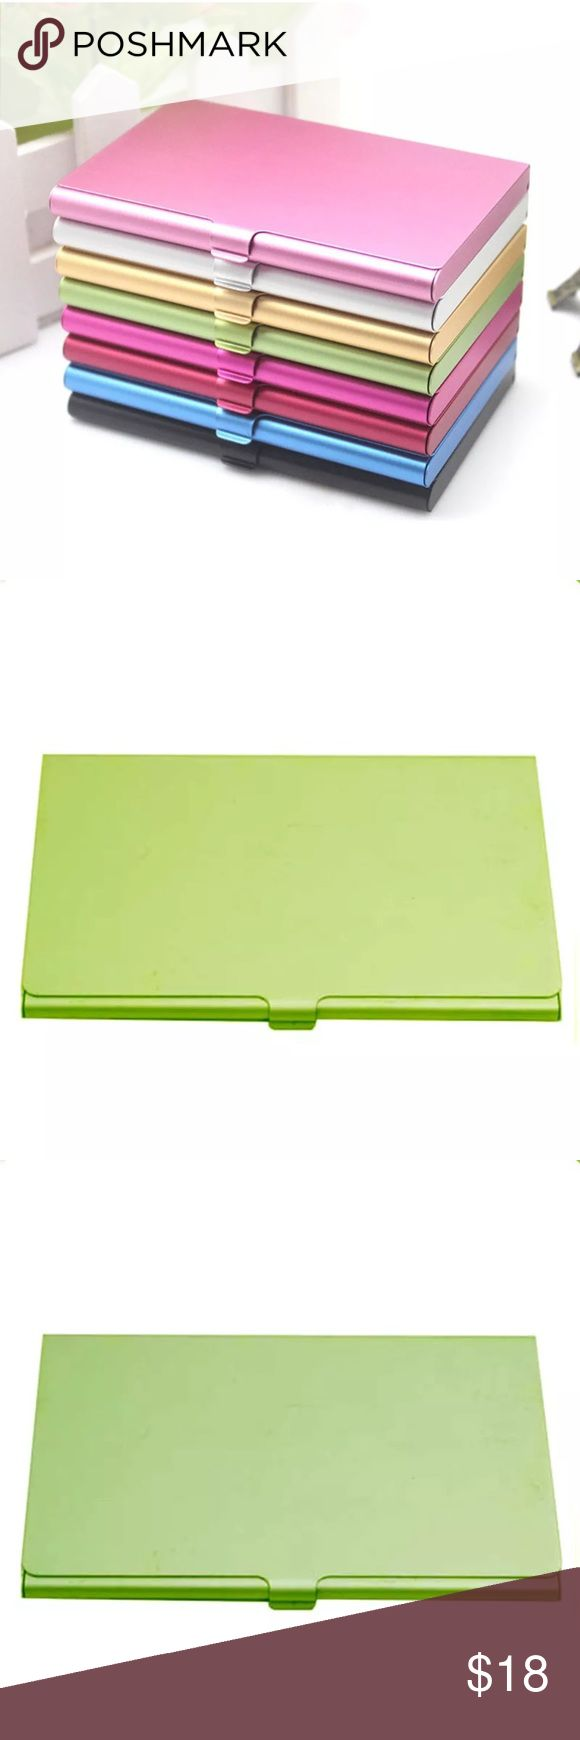 LIGHT GREEN ALUMINUM BUSINESS CARD CASE LIGHT GREEN ALUMINUM BUSINESS CARD CASE Brand new and high quality Solid, durable, easy to carry Easy to open and close. Stylish design, make your business life convenient and effective. Holds about 10 Business Cards depending on thickness of cards Such Card Holder is specially designed as Business Card Holder/Credit Card Holder/ID Card Holder/any other cards. Material: Aluminum Alloy Size: approx. 9.3*5.8*0.8cm Accessories Key & Card Holders